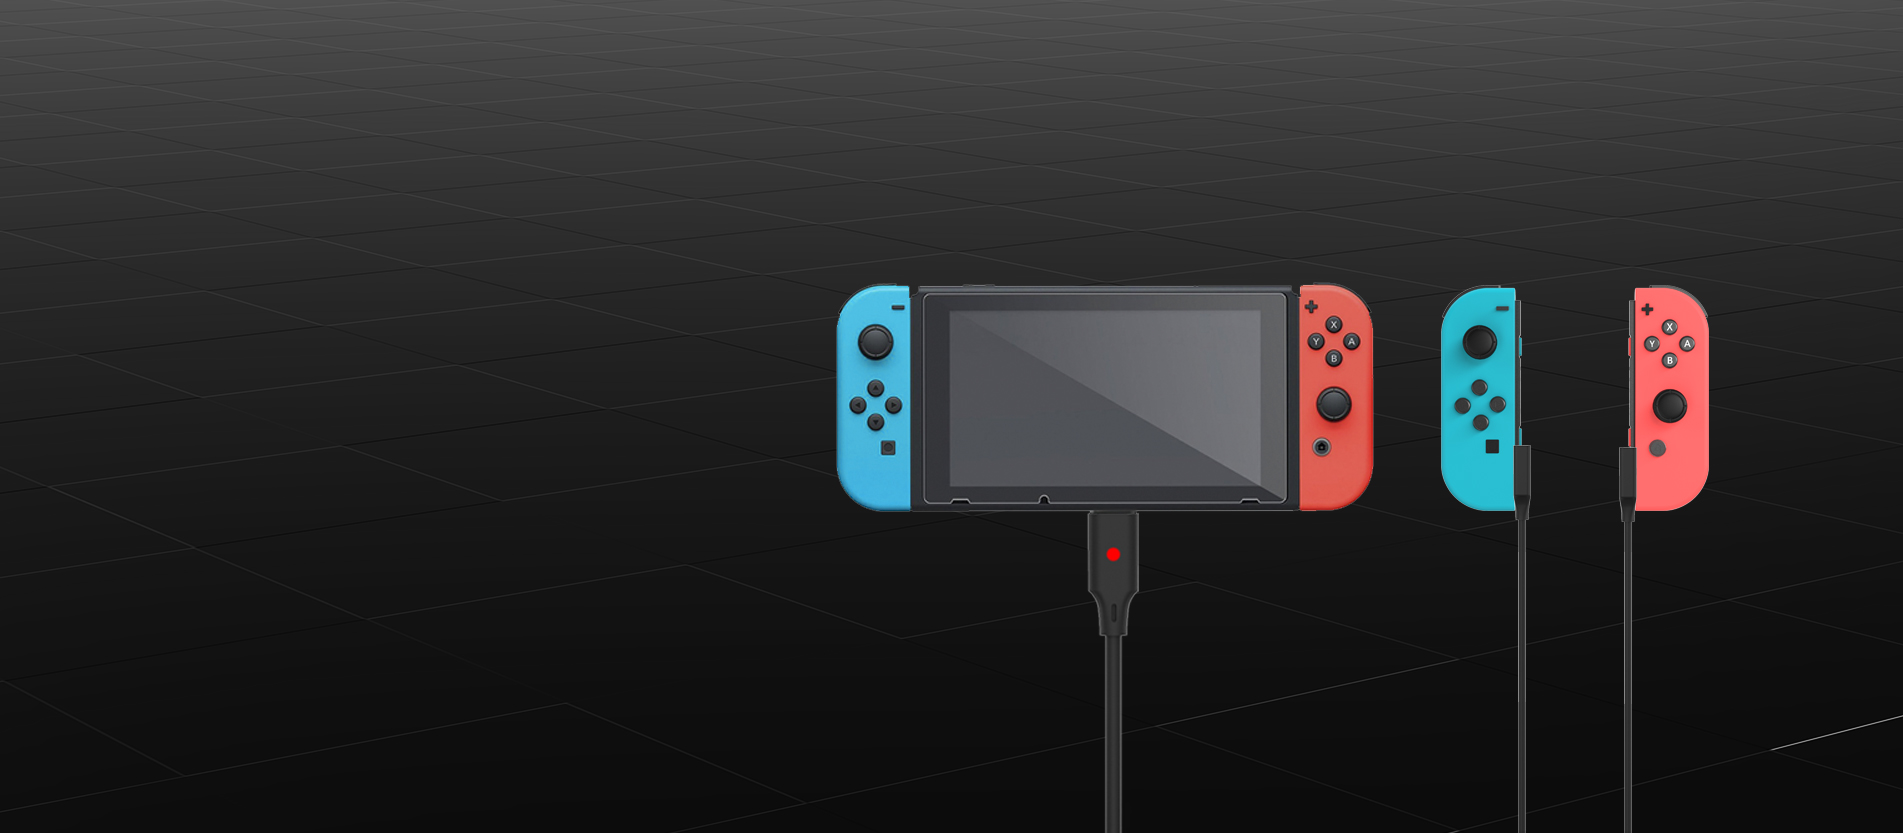 2 joycon charging cable